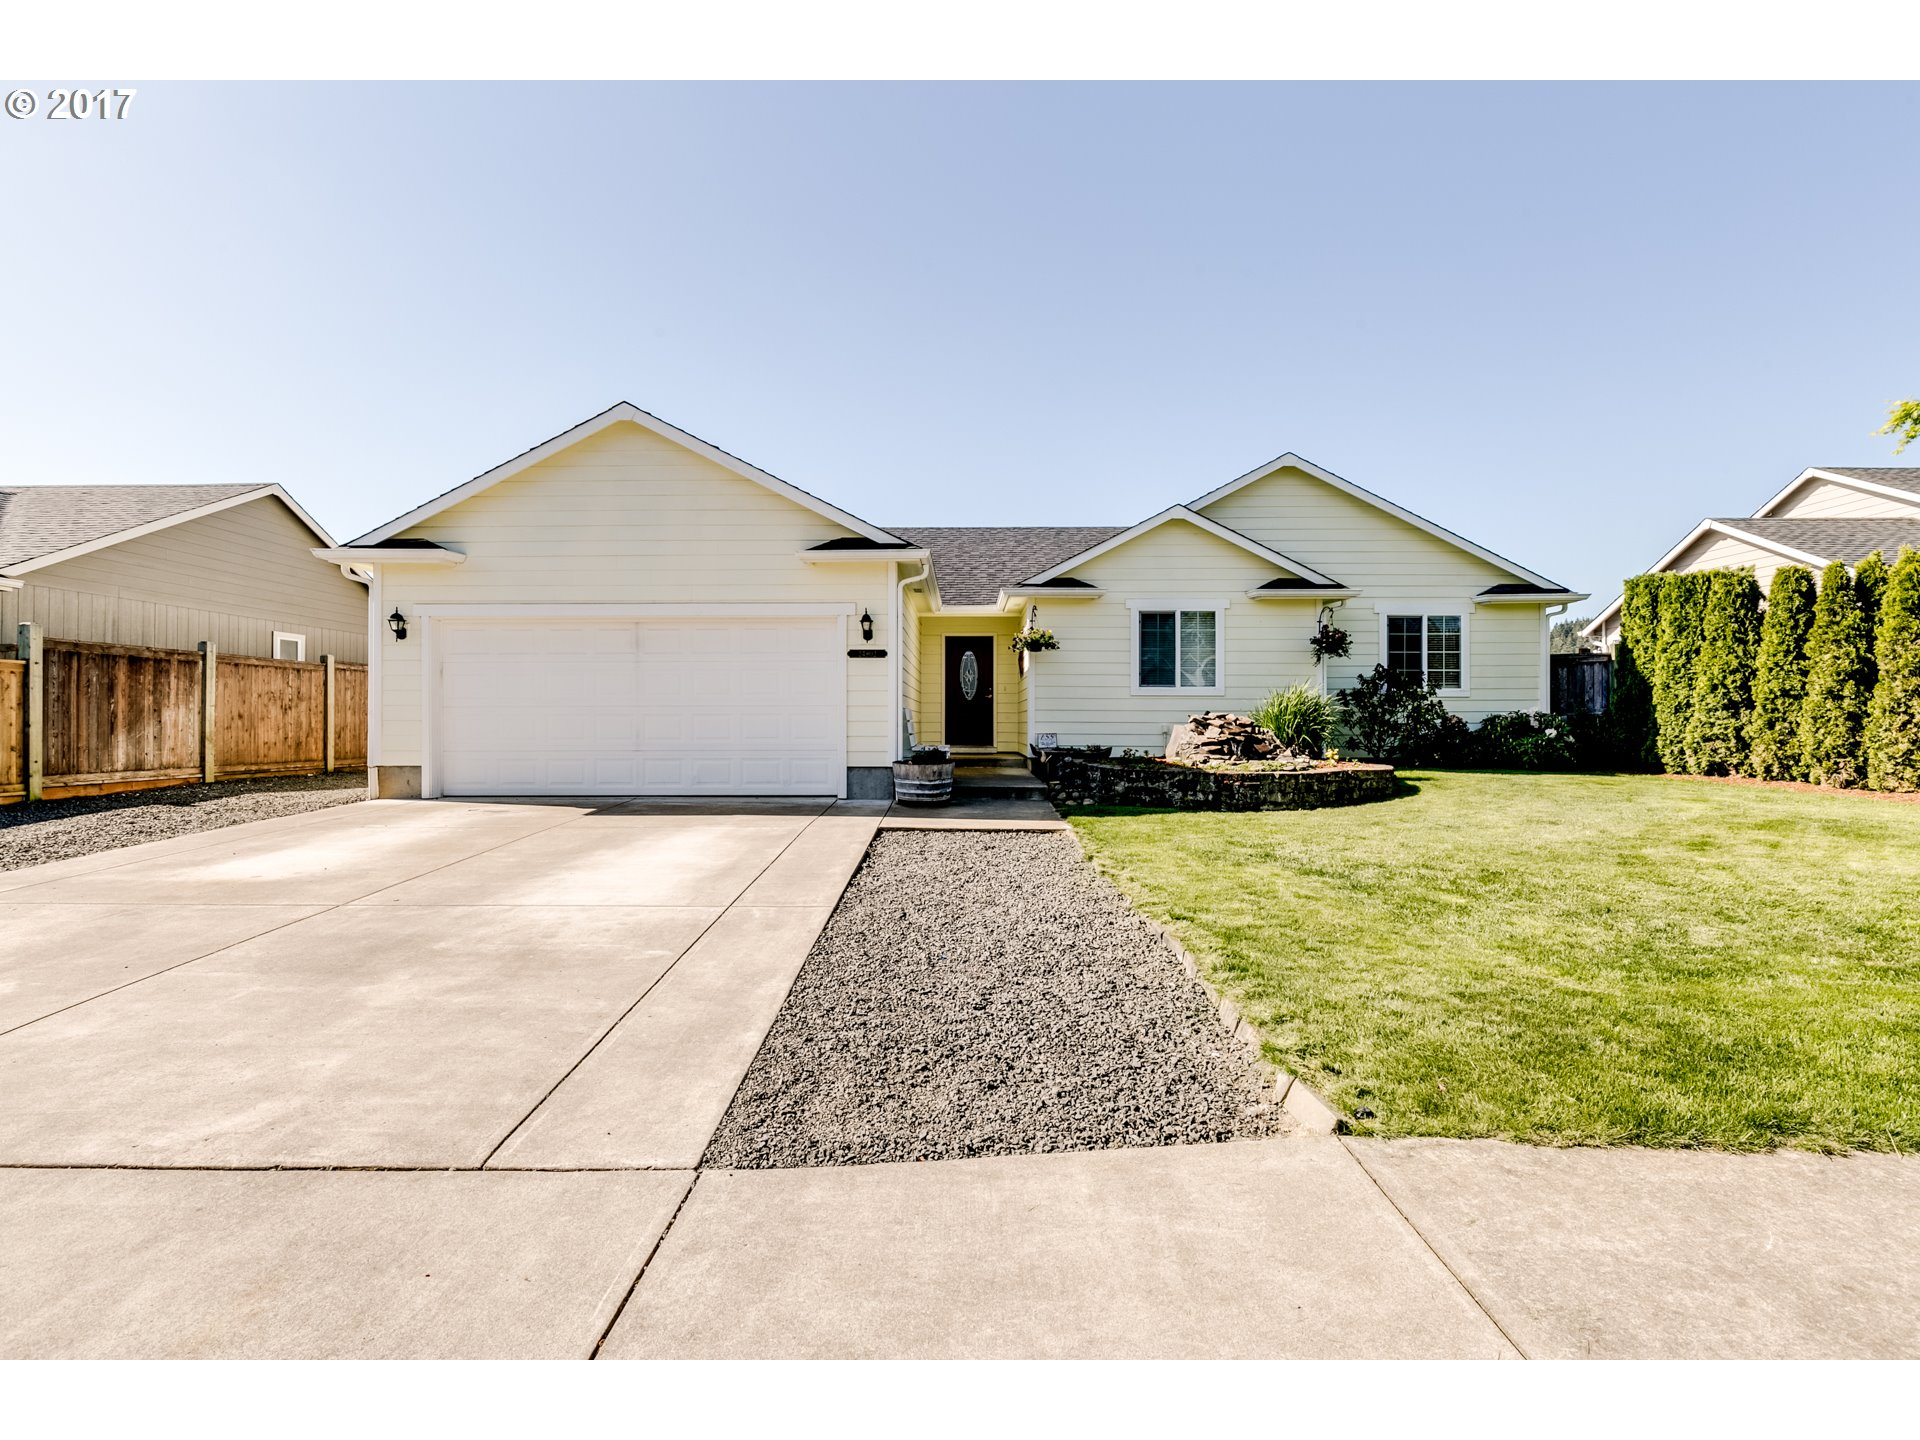 24902 KINGPIN LOOP, Veneta, OR 97487